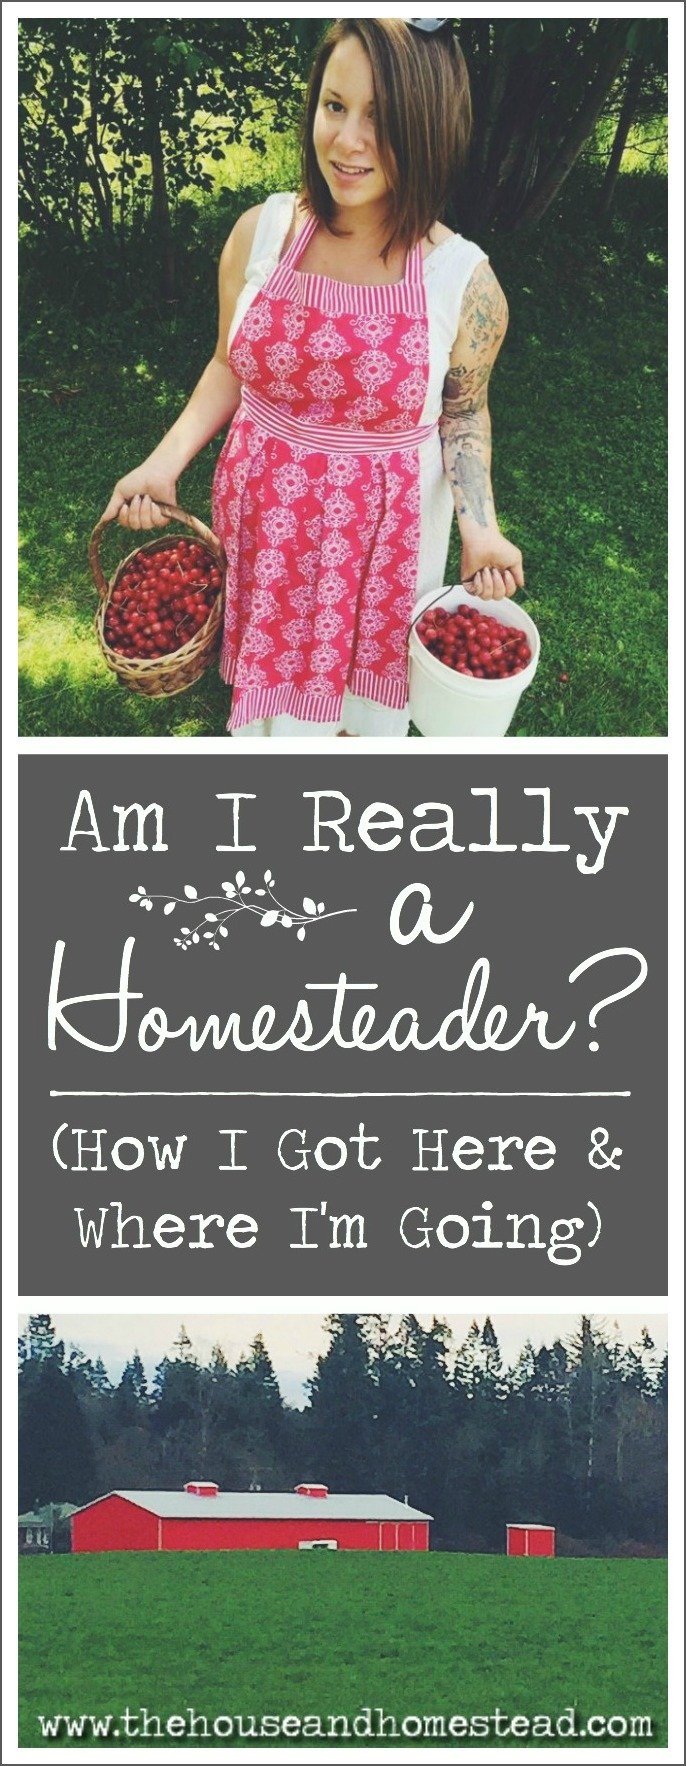 Have you ever wondered whether you can really call yourself a homesteader or felt like other people think homesteading is just a phase you'll grow out of? I have. But guess what: I am a homesteader, among many other things that led me to where I am today. This is my story.